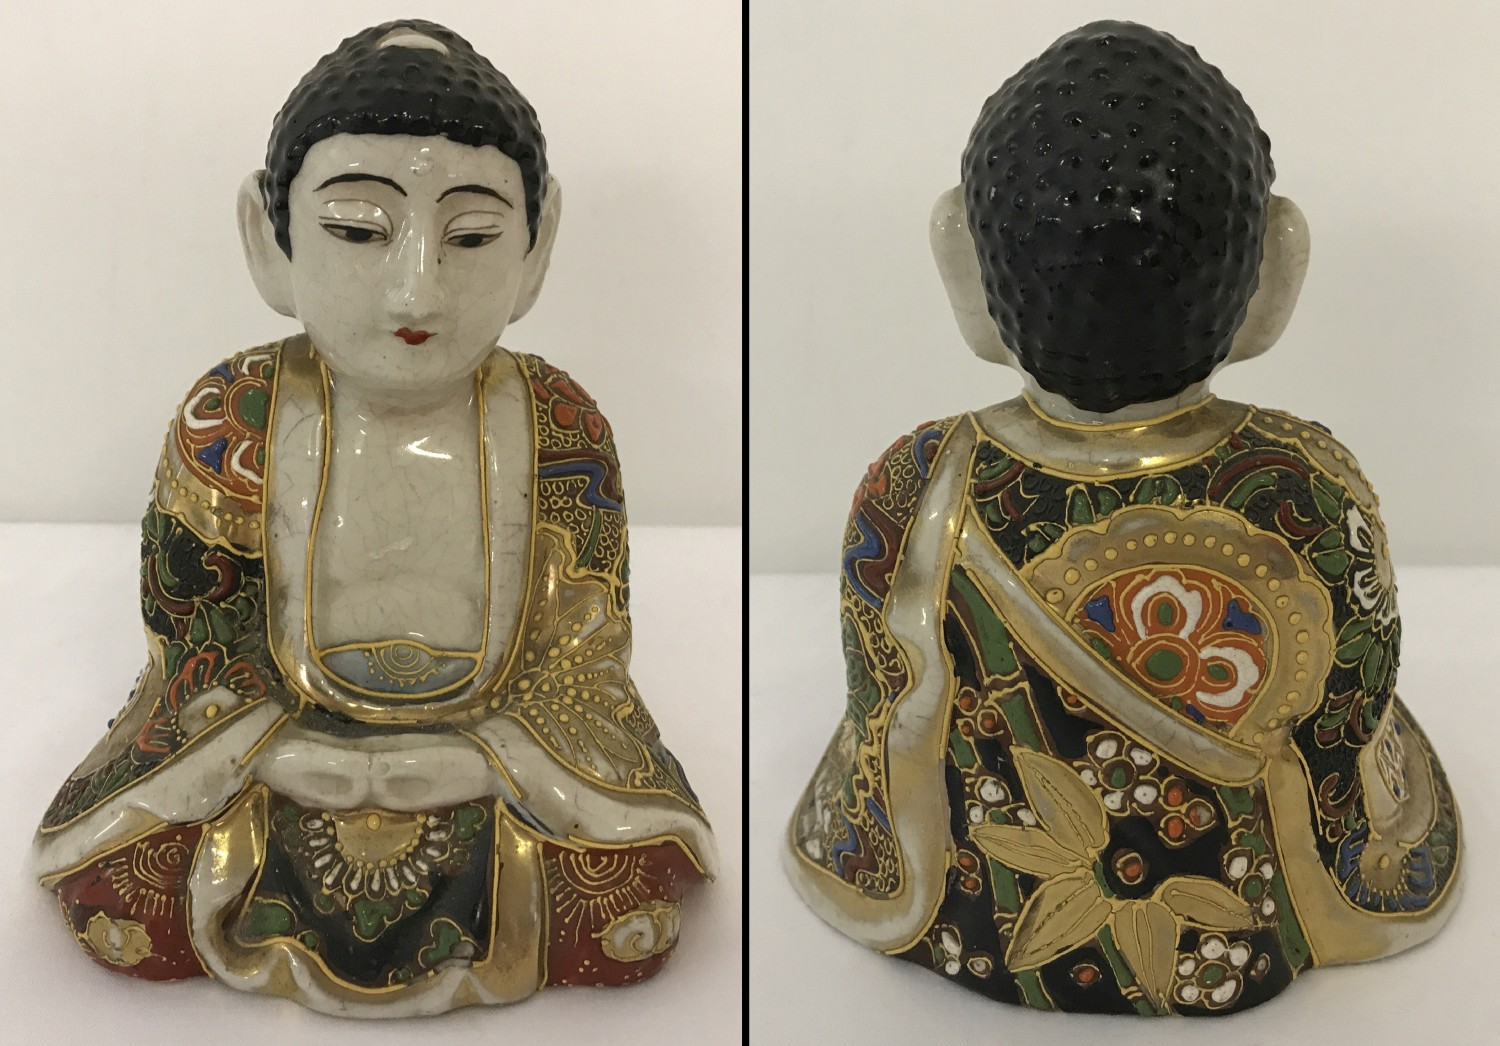 Lot 38 - A ceramic sitting Buddha figure with gilt and hand painted floral decoration to his robe.